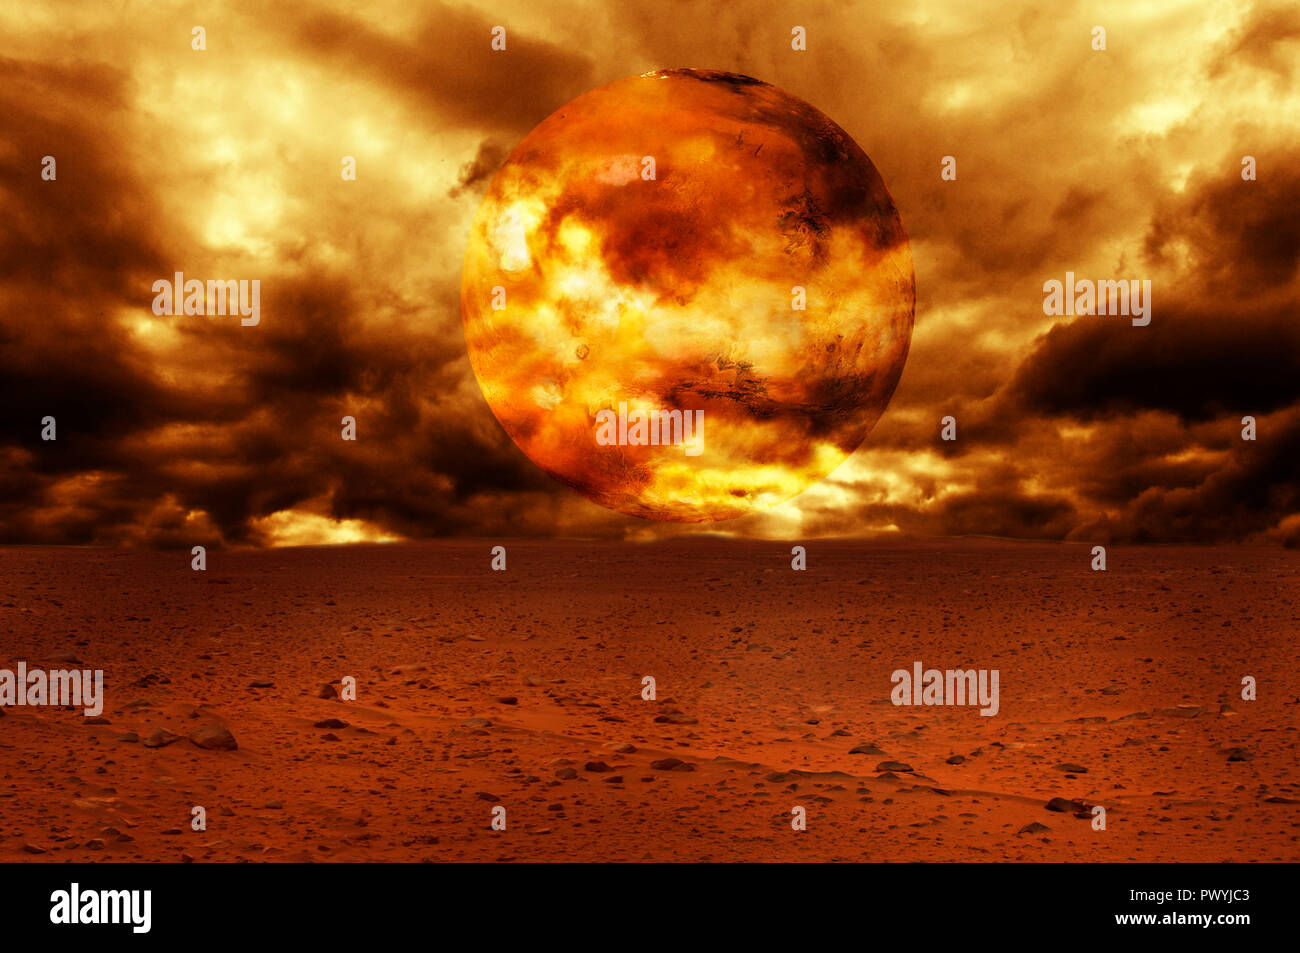 red planet illustration with desert ground - Stock Image